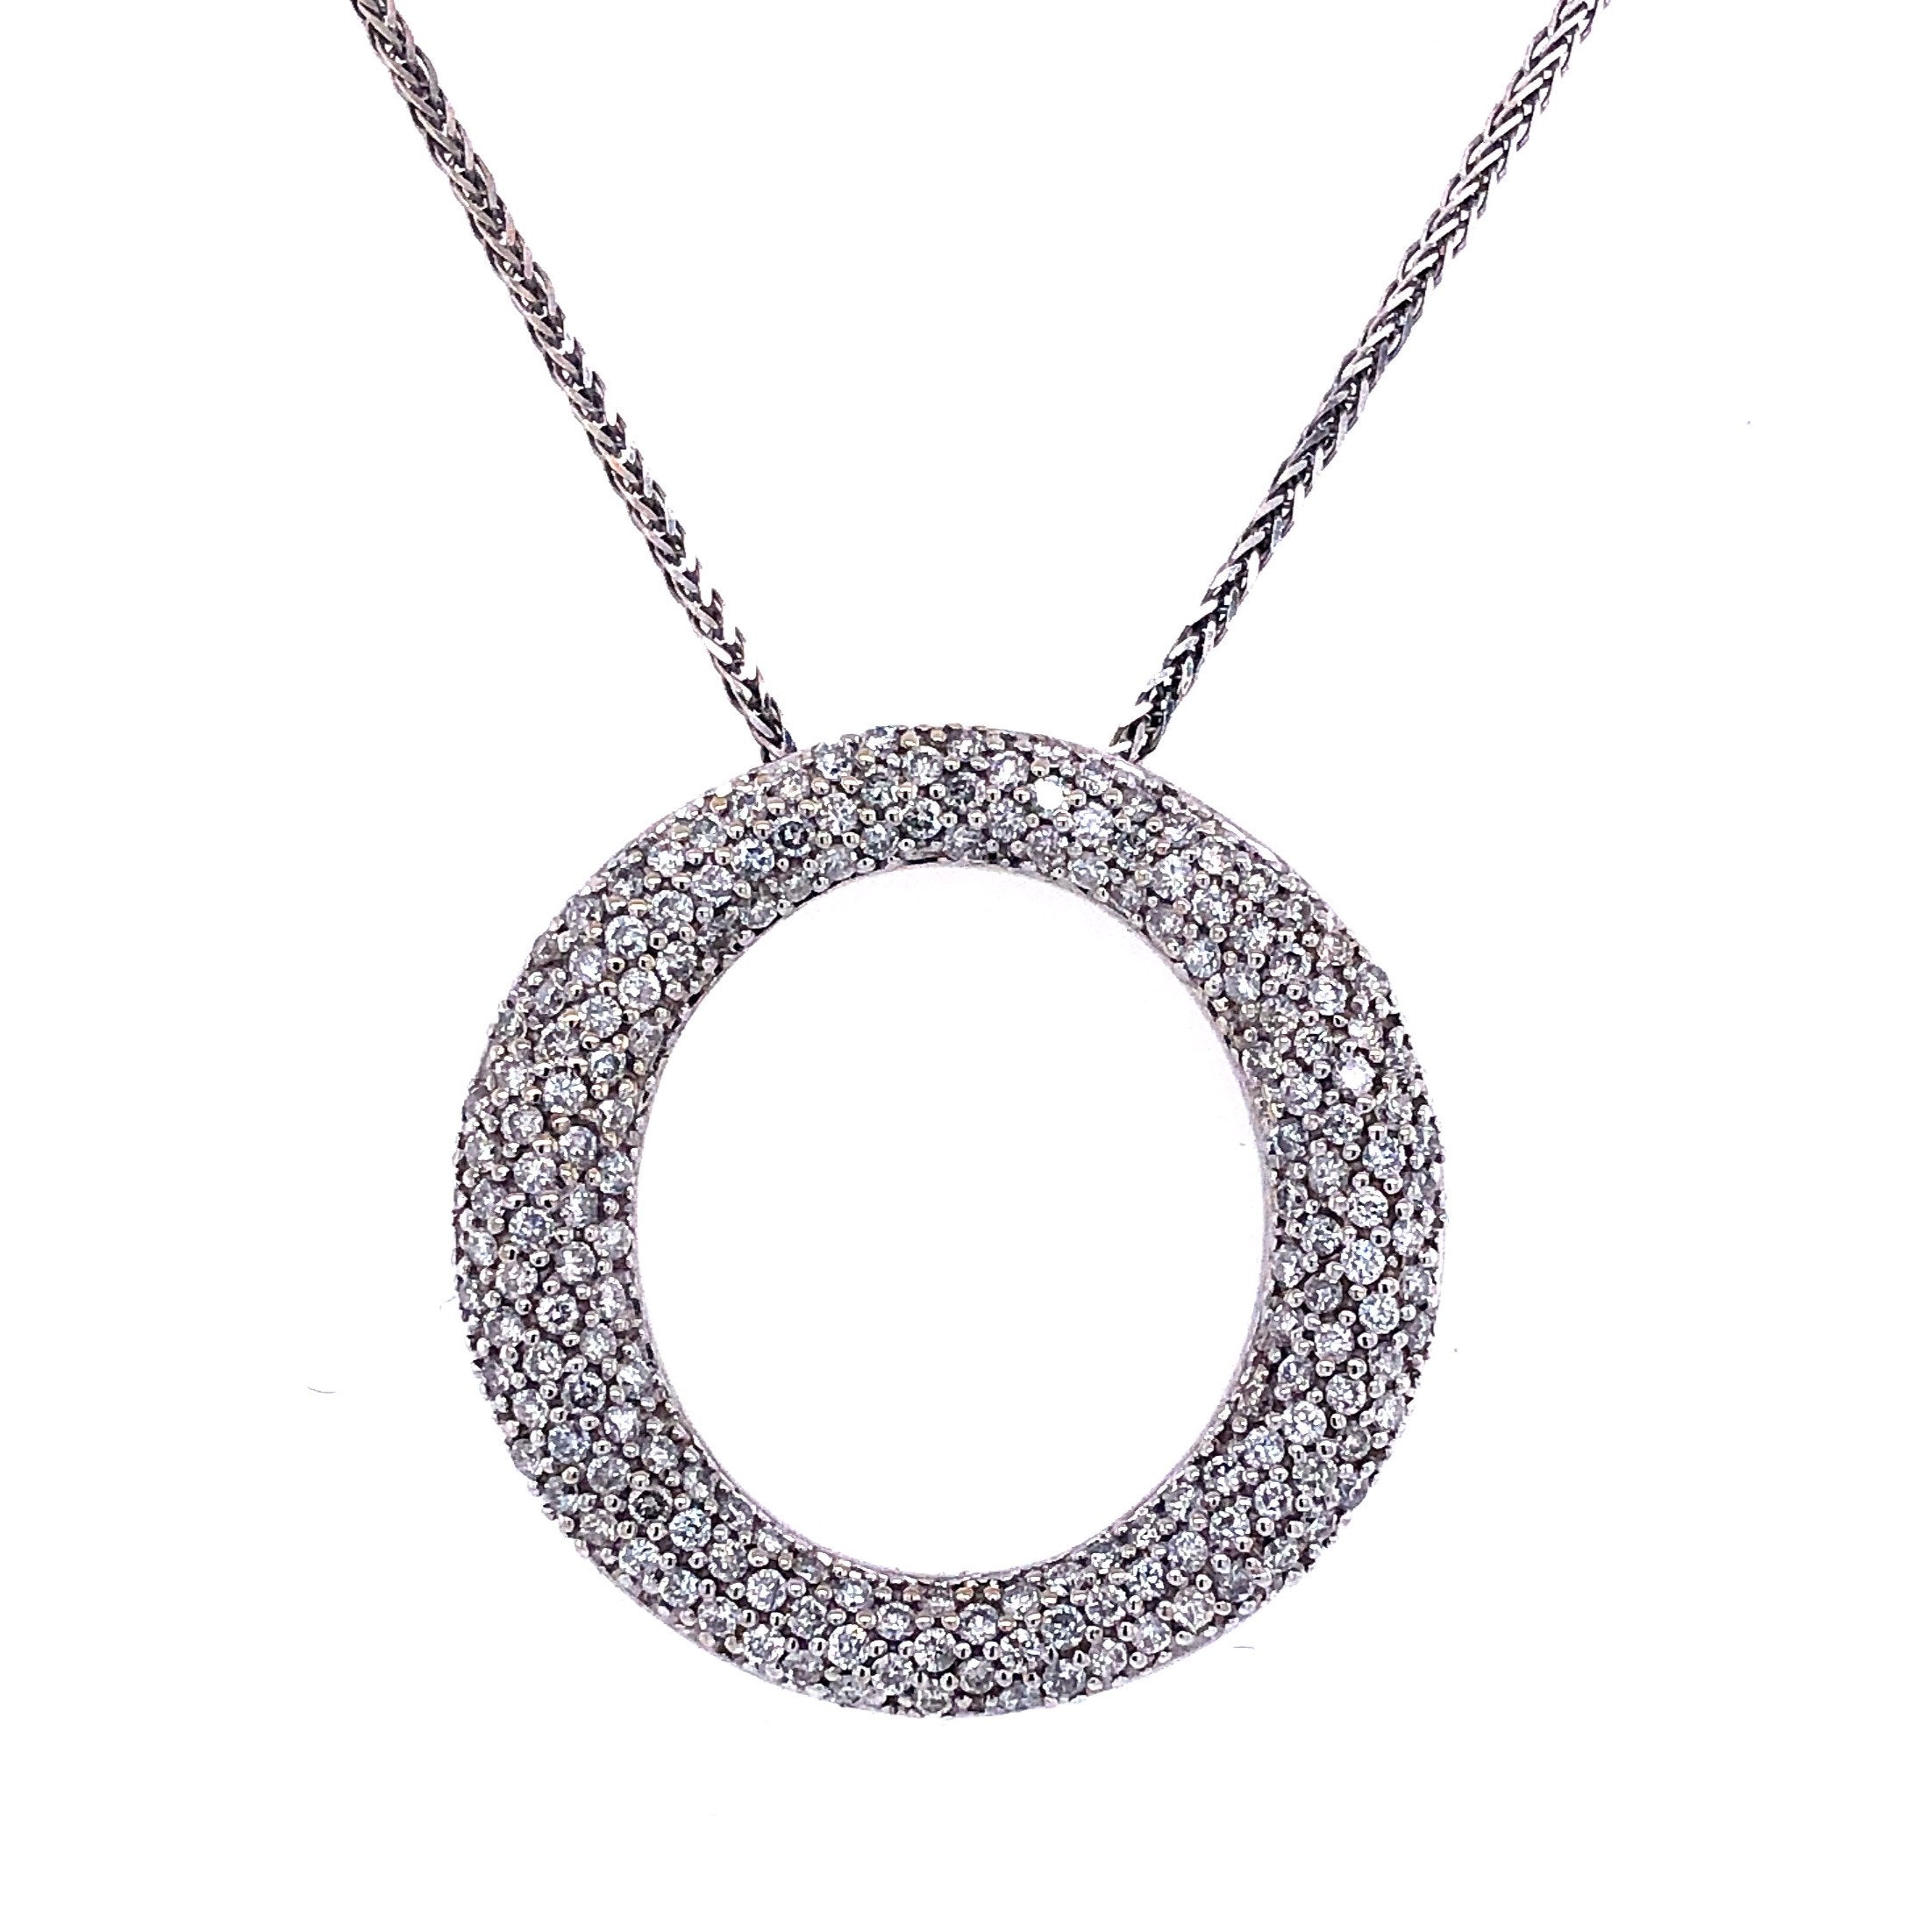 White Gold Pavé Diamond Necklace